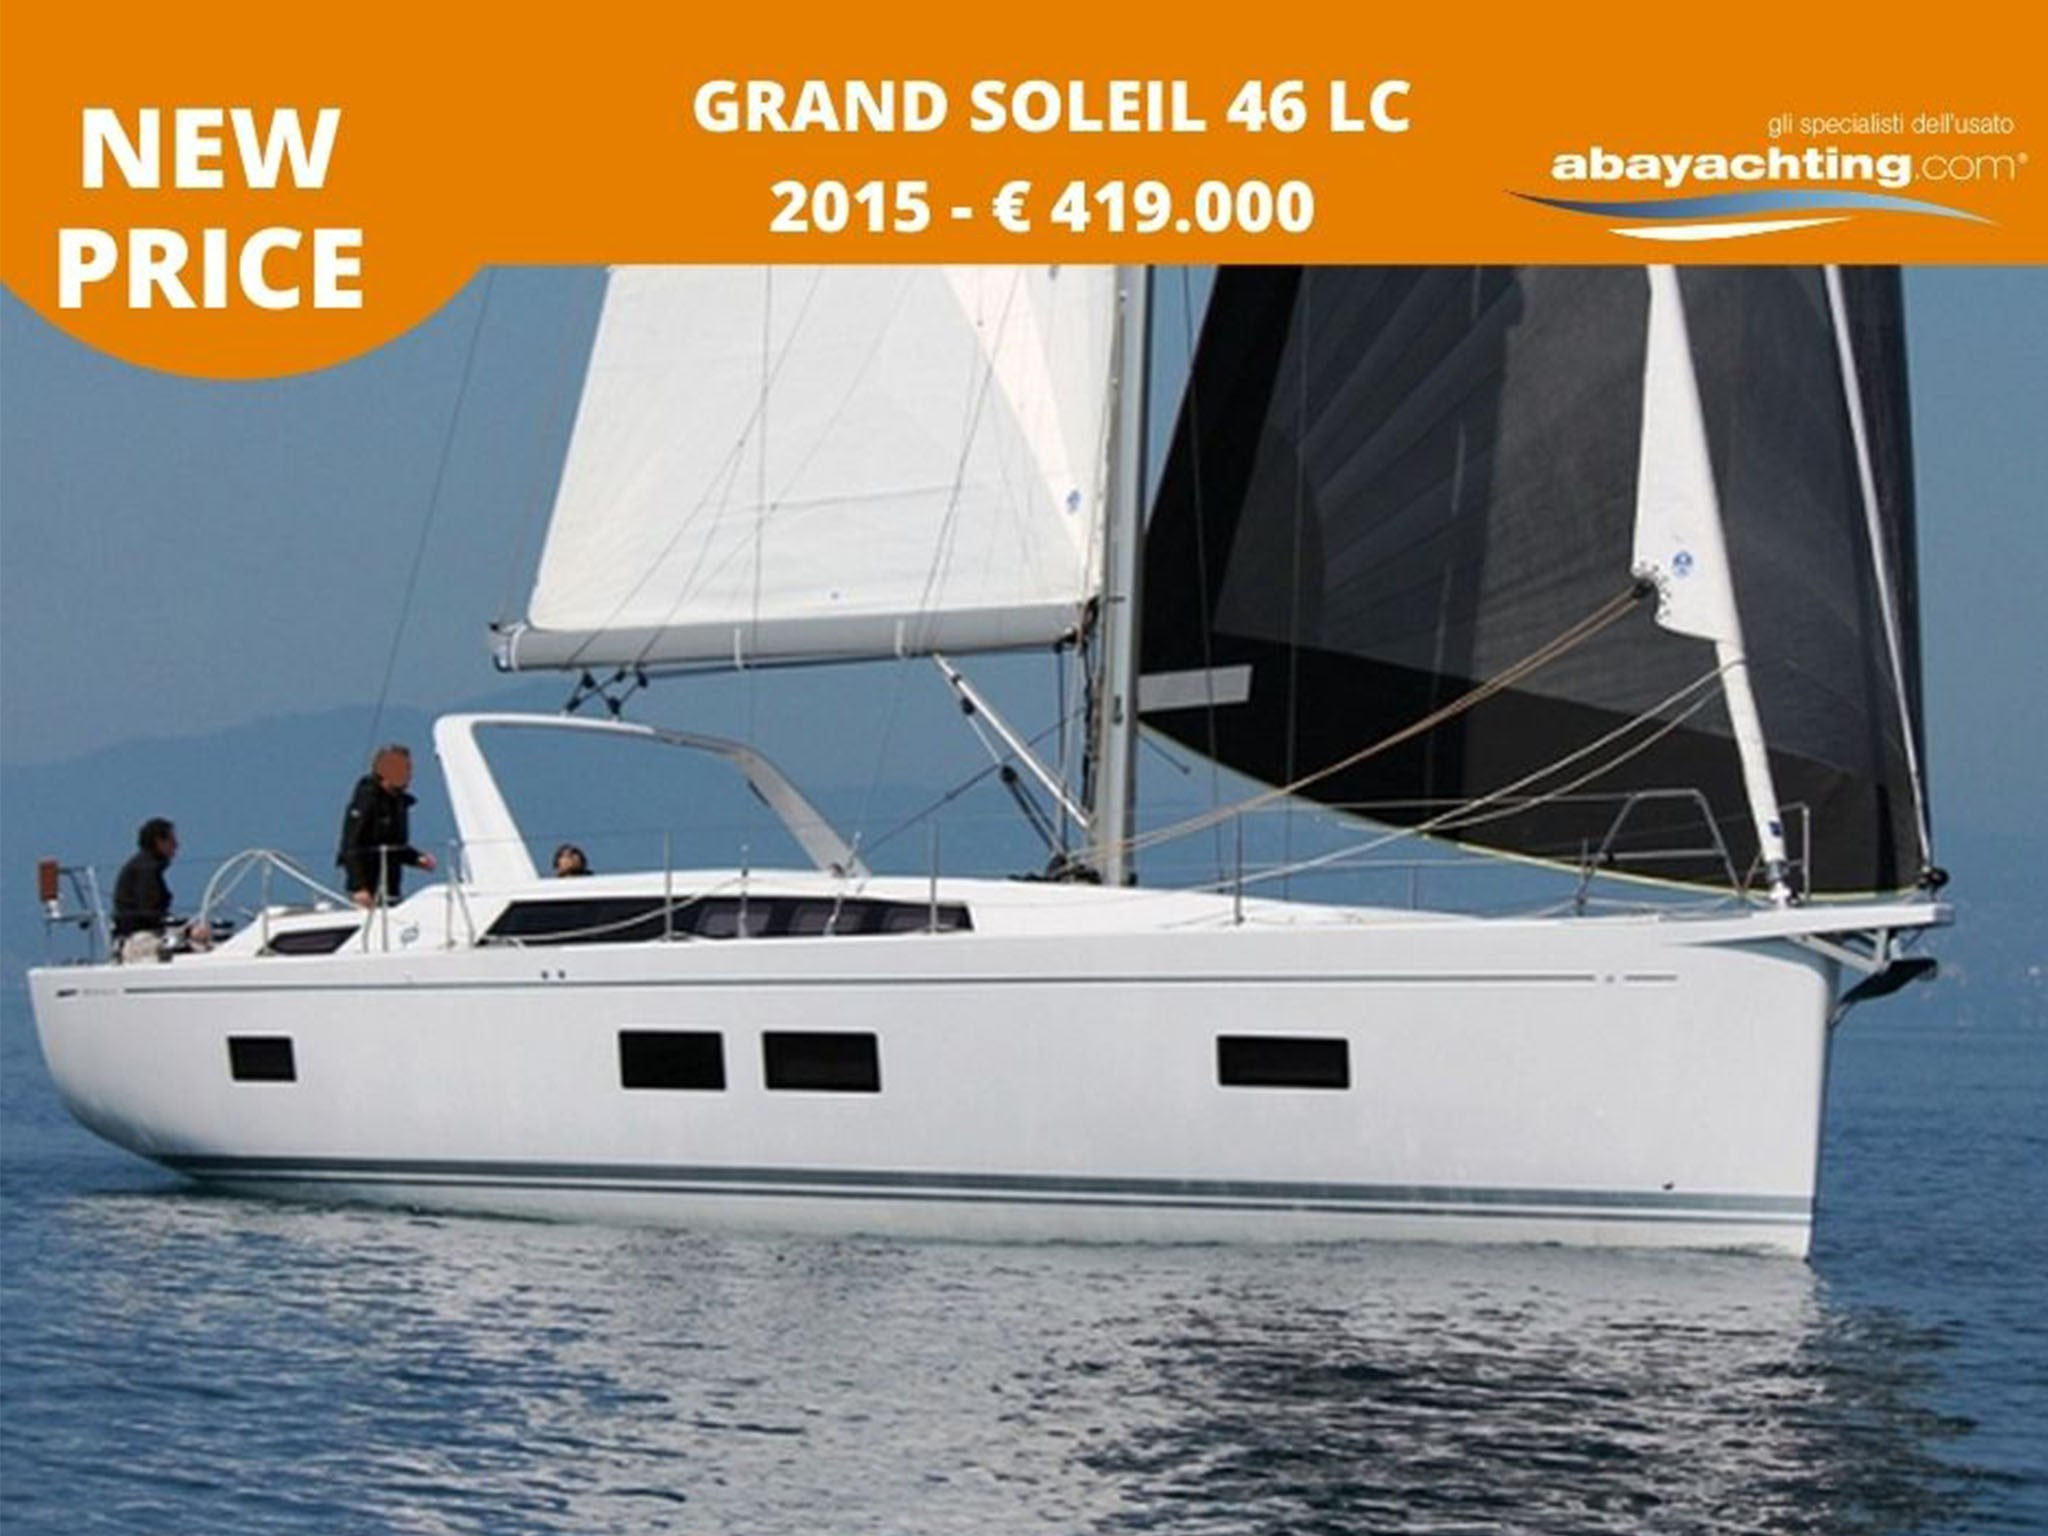 New price Grand Soleil 46 LC